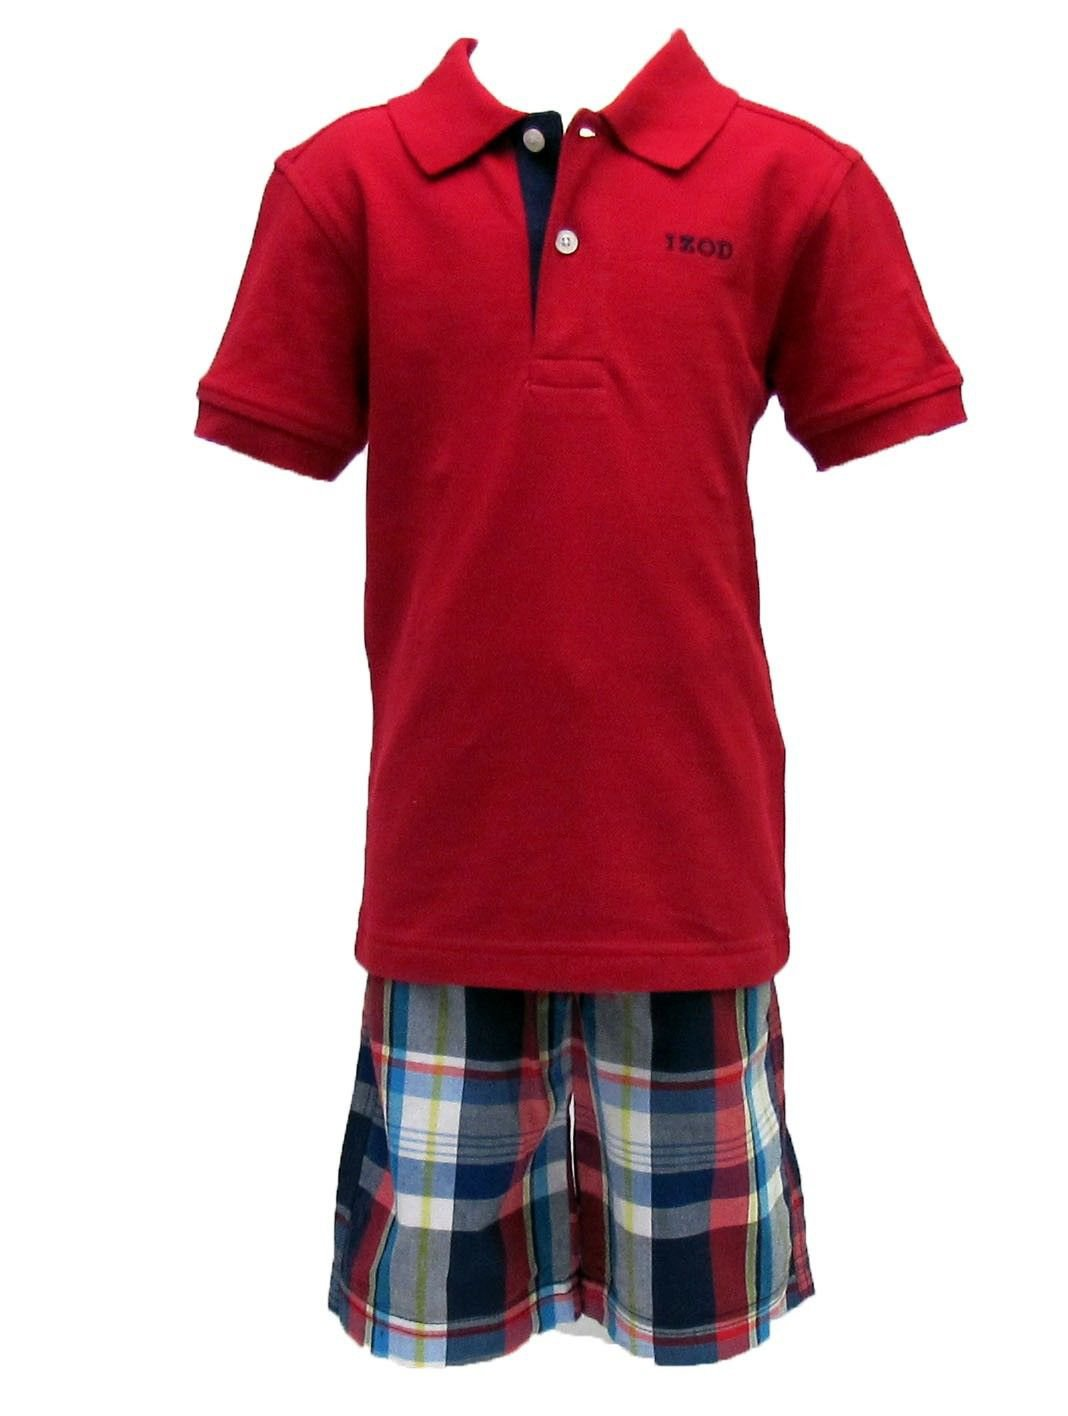 Izod Boys Size 2t Red Pique Polo Shirt And Plaid Shorts